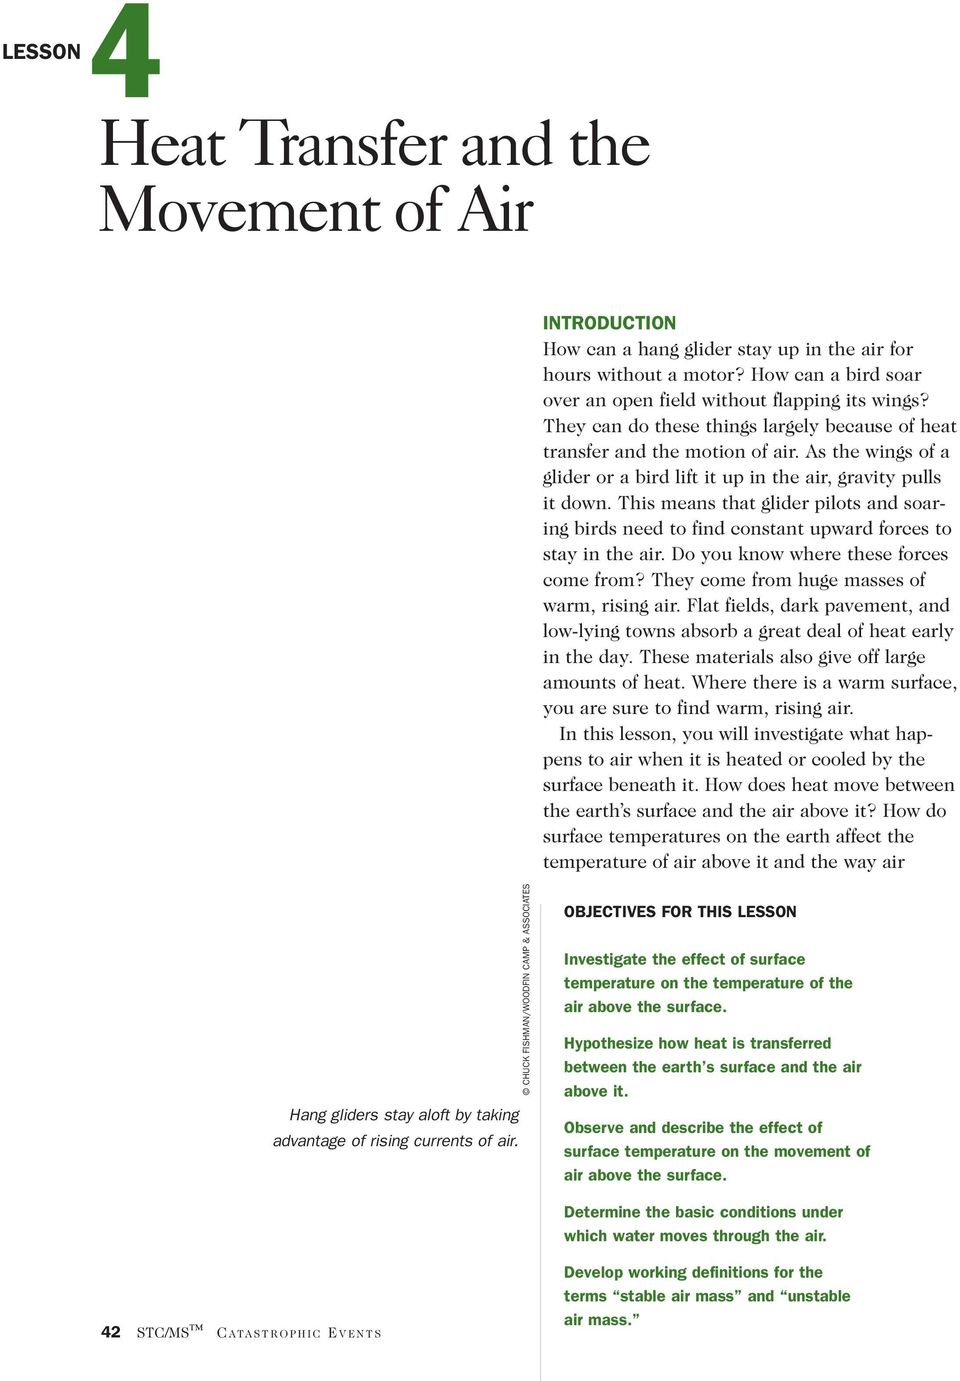 Heat Transfer and the Movement of Air - PDF